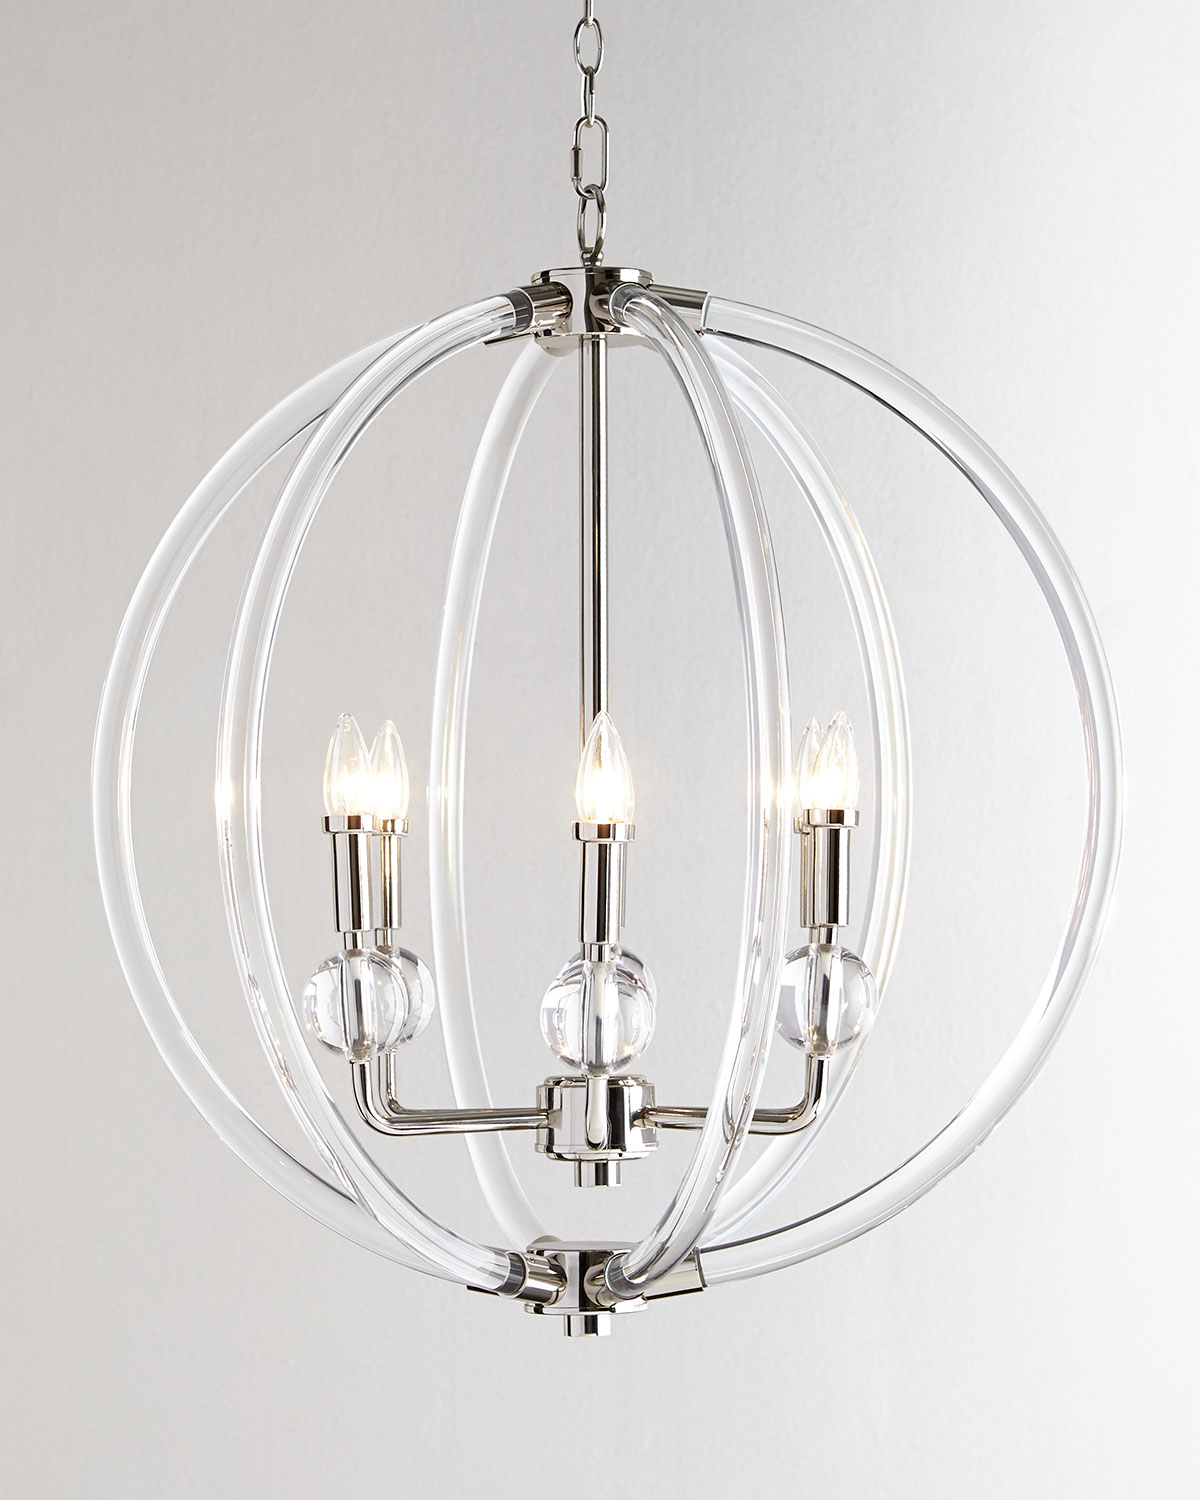 Neiman marcus lighting Pendant Light Neiman Marcus Acrylic Silver 6light Pendant Neiman Marcus